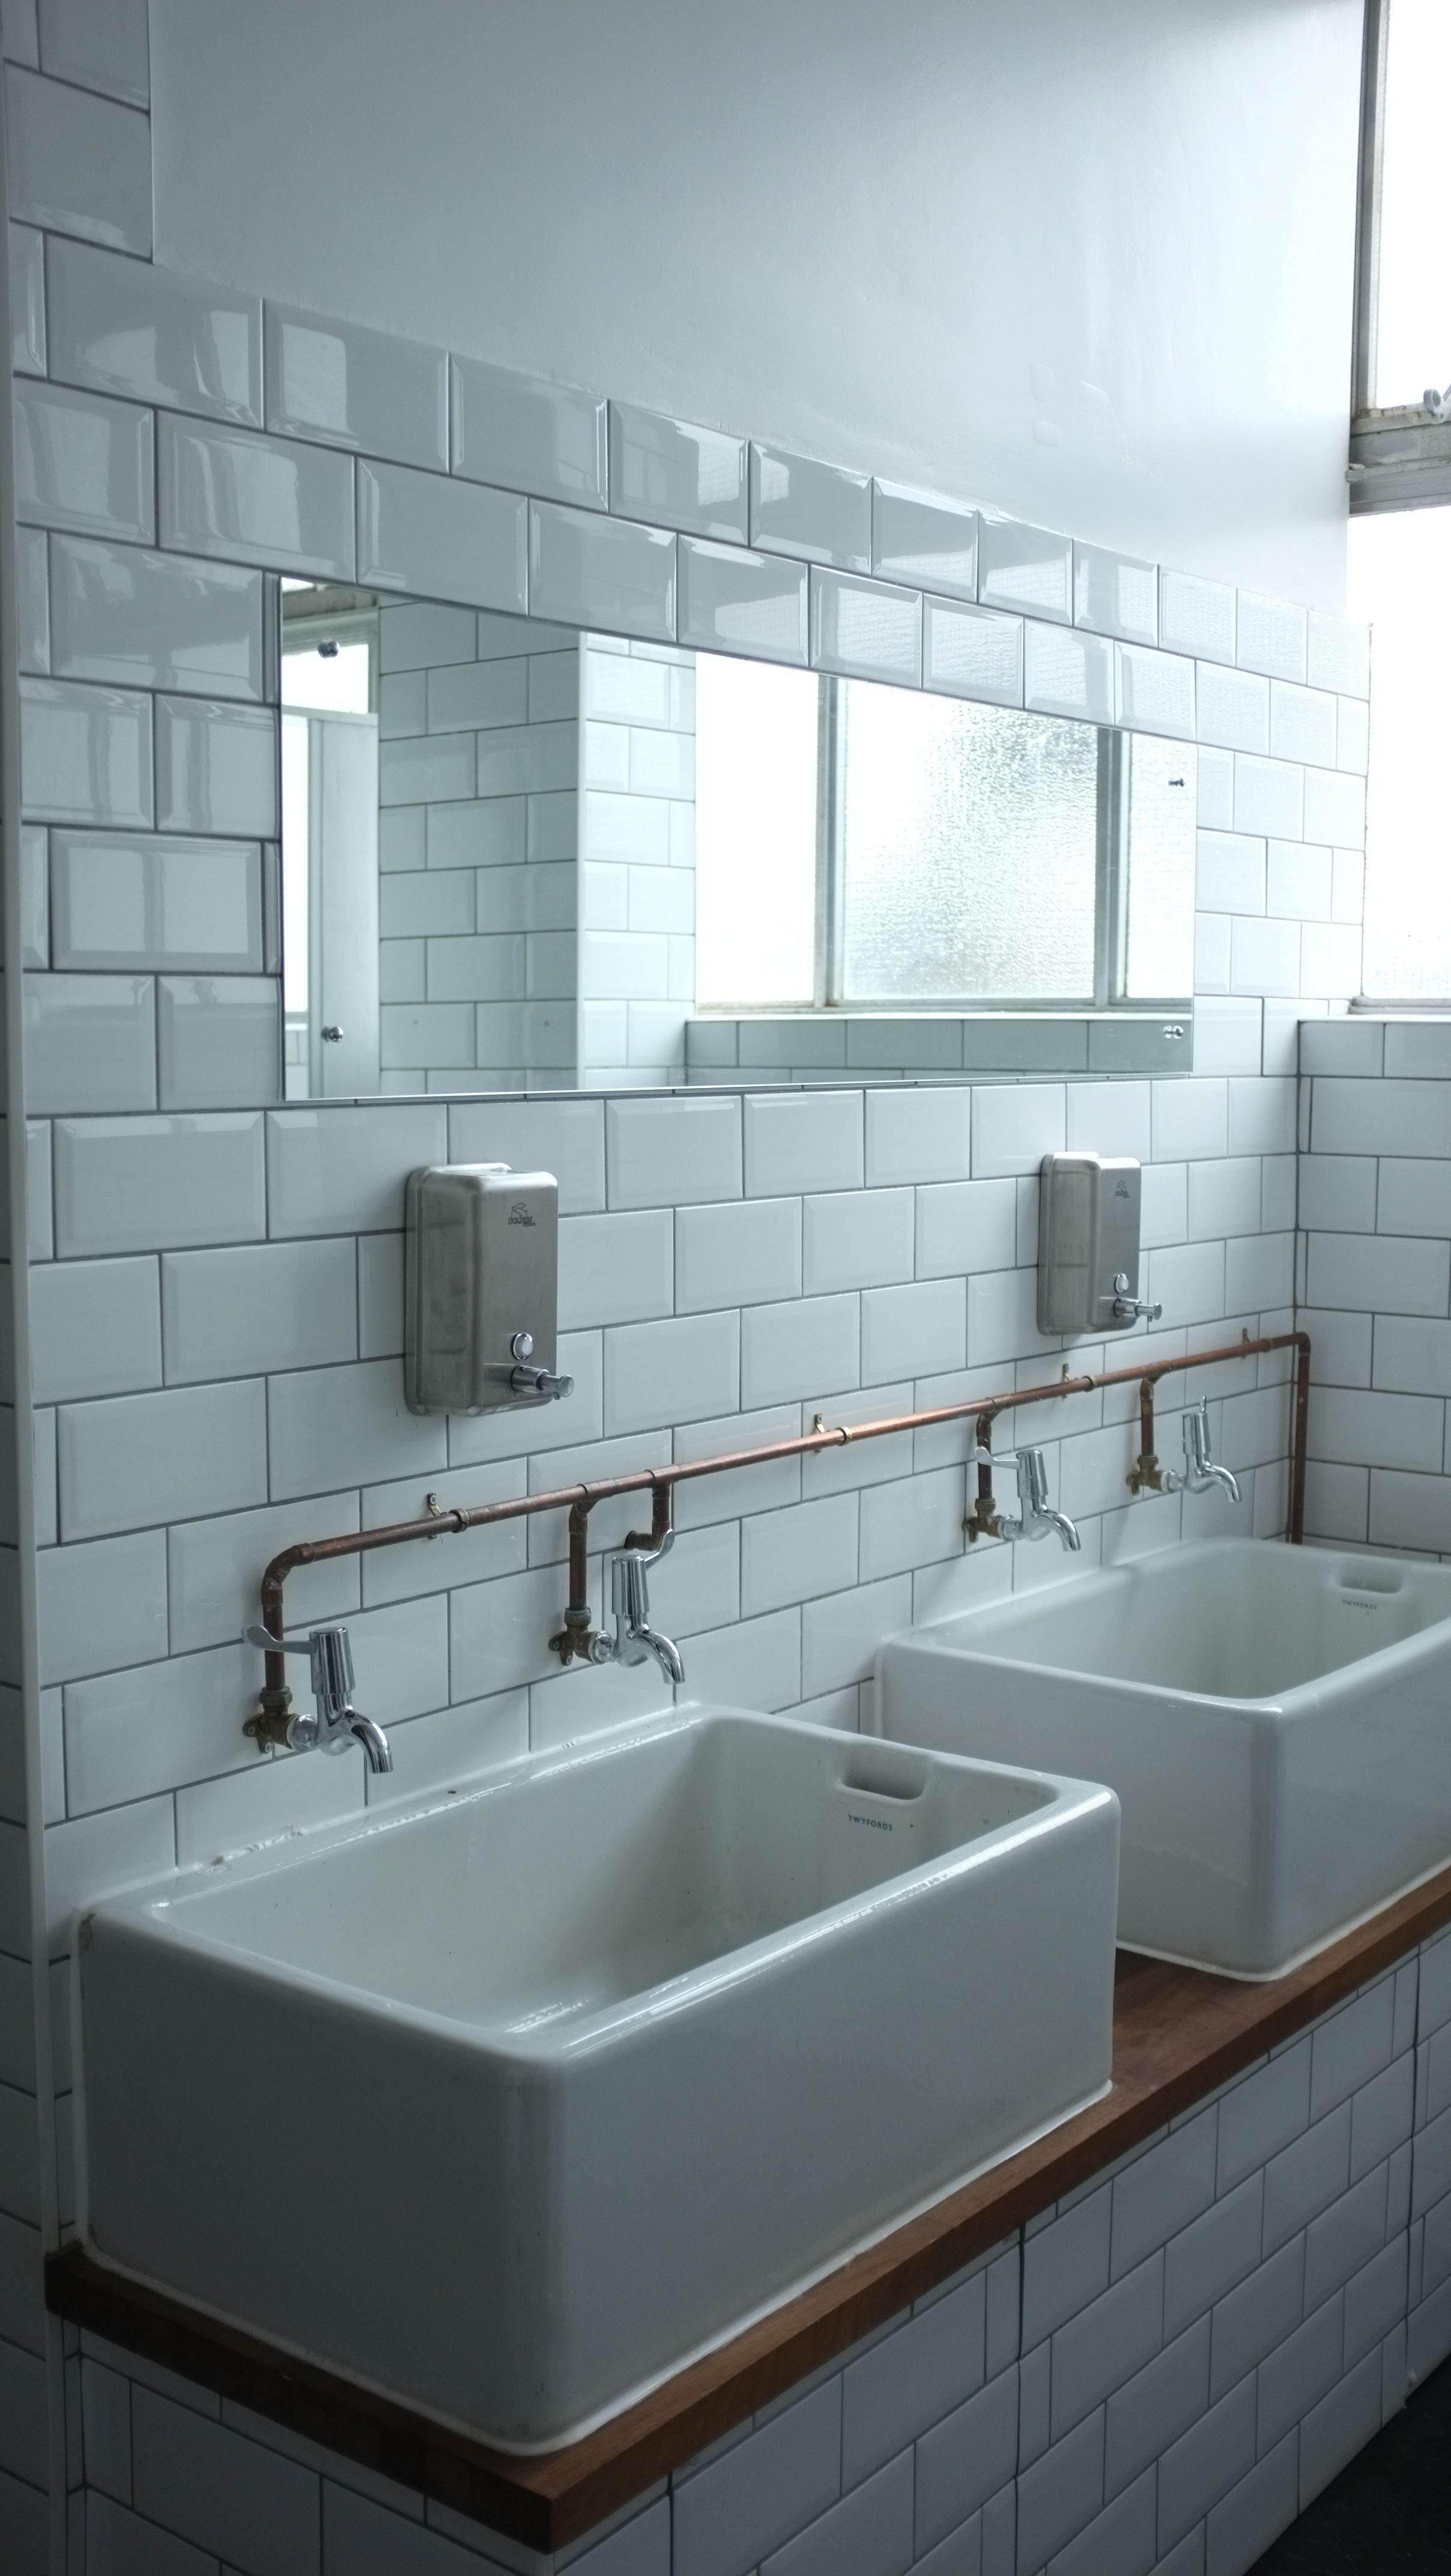 WHITE METRO TILES AND COPPER PIPES shootfactory london location ...